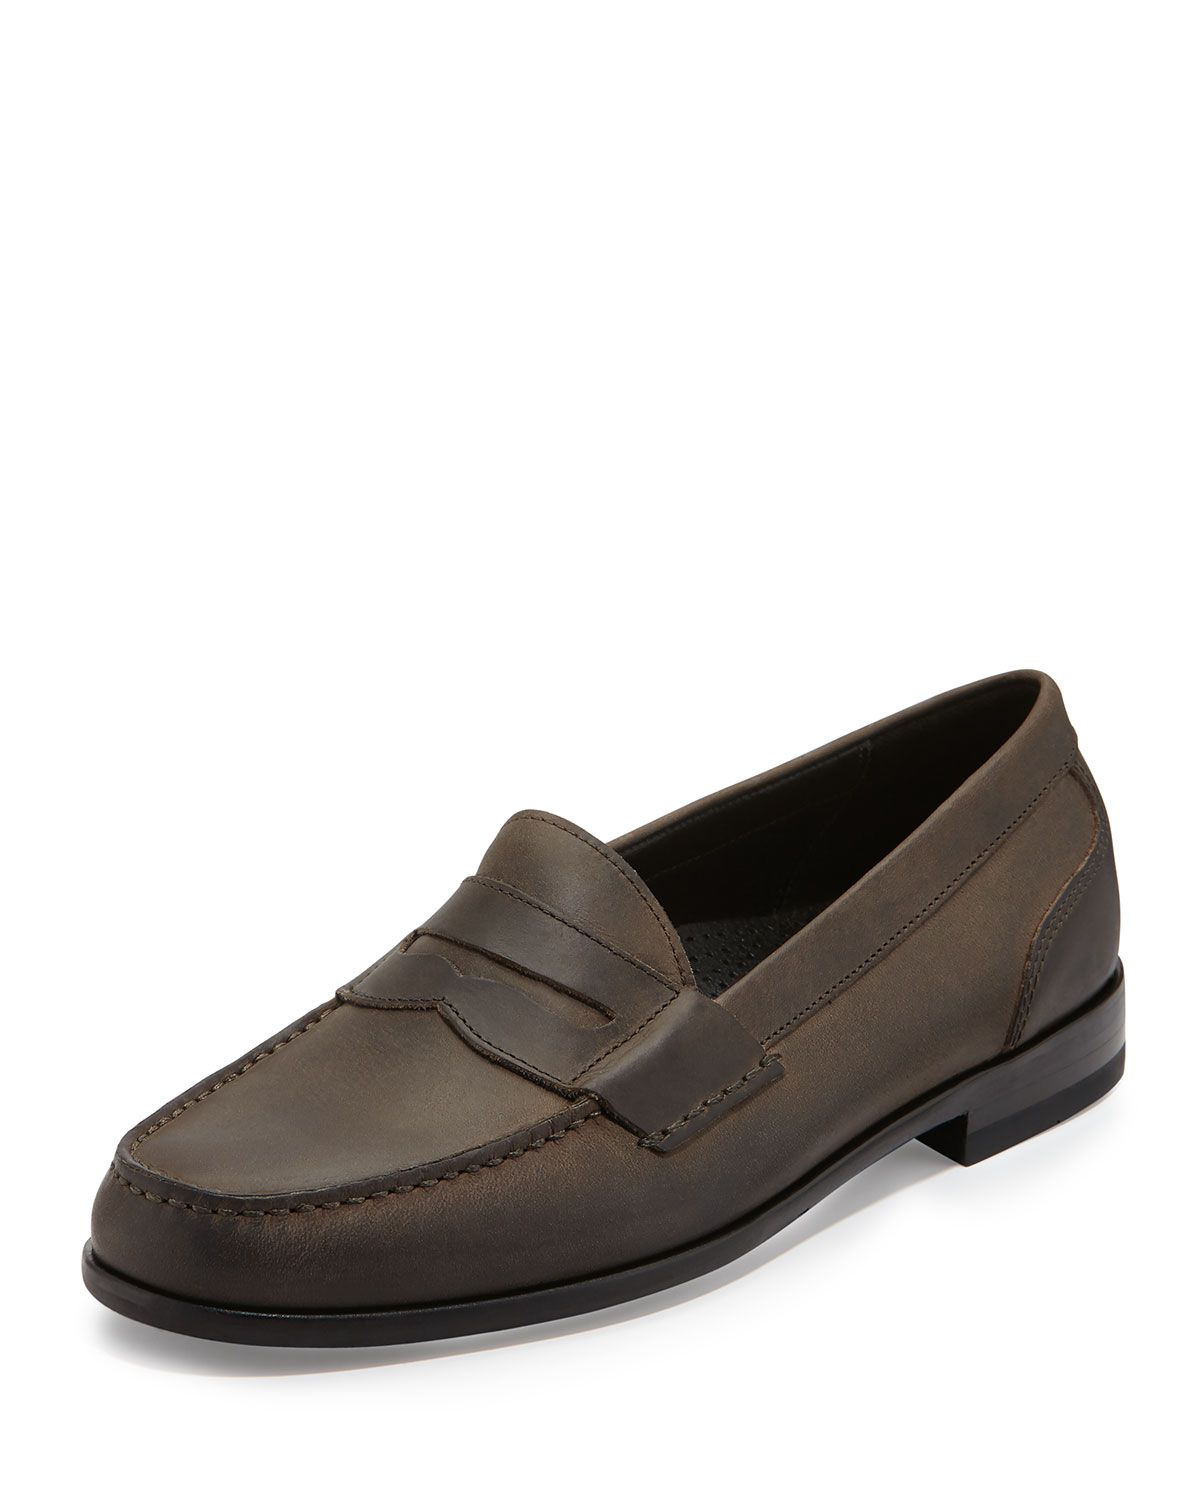 1cd0ebfd3a6 Cole Haan Fairmont Leather Penny Loafer